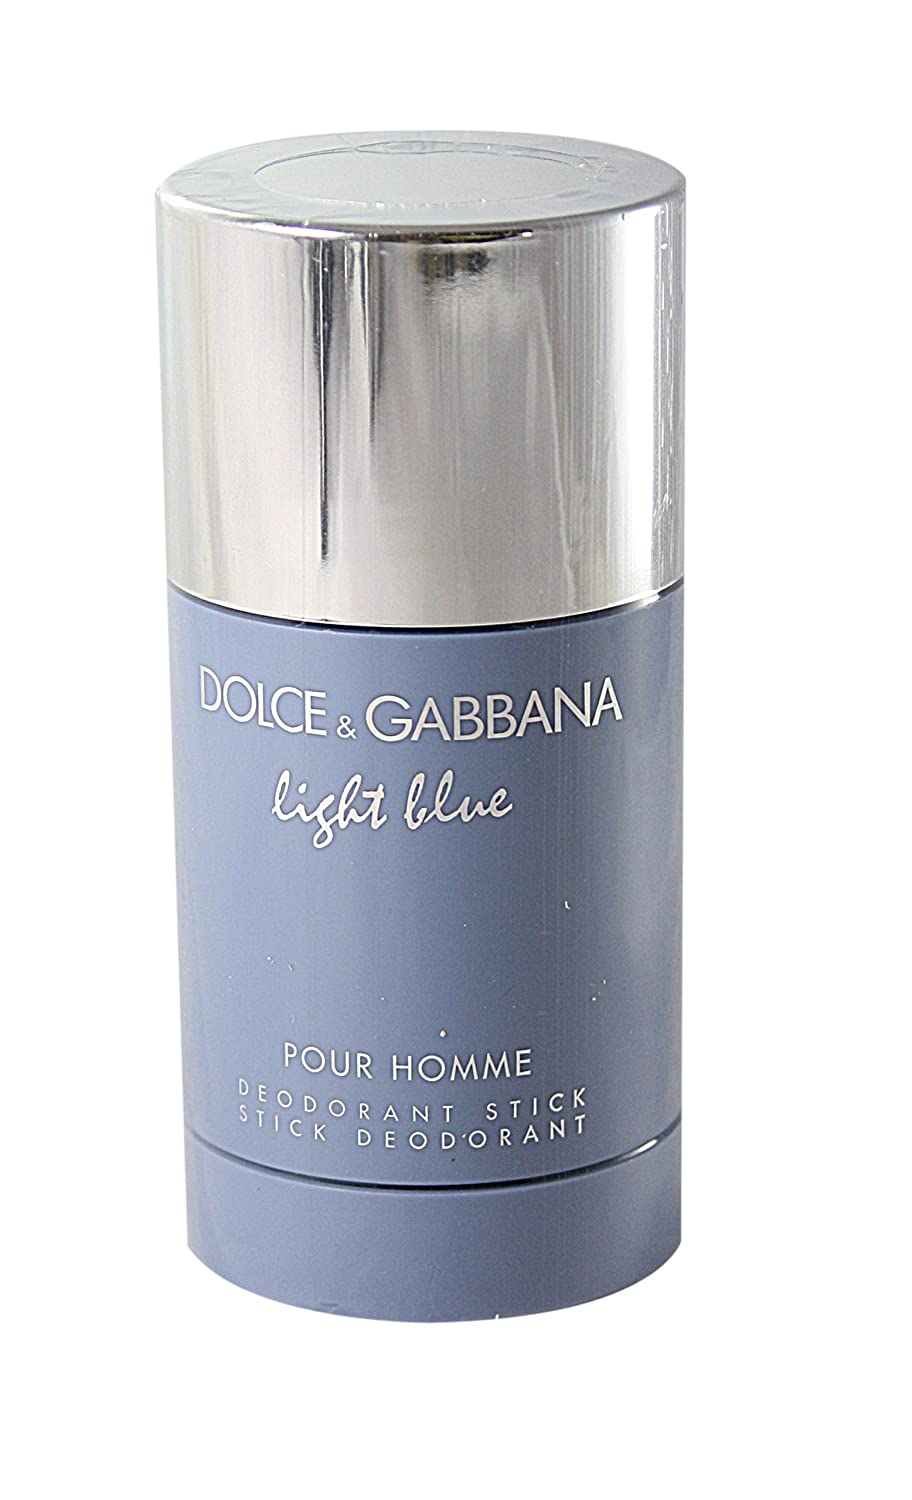 Dolce and Gabbana Light Blue Pour Homme by for Men Deodorant Stick, 2. 5-Ounce Dolce & Gabbana 159862 56799_-75